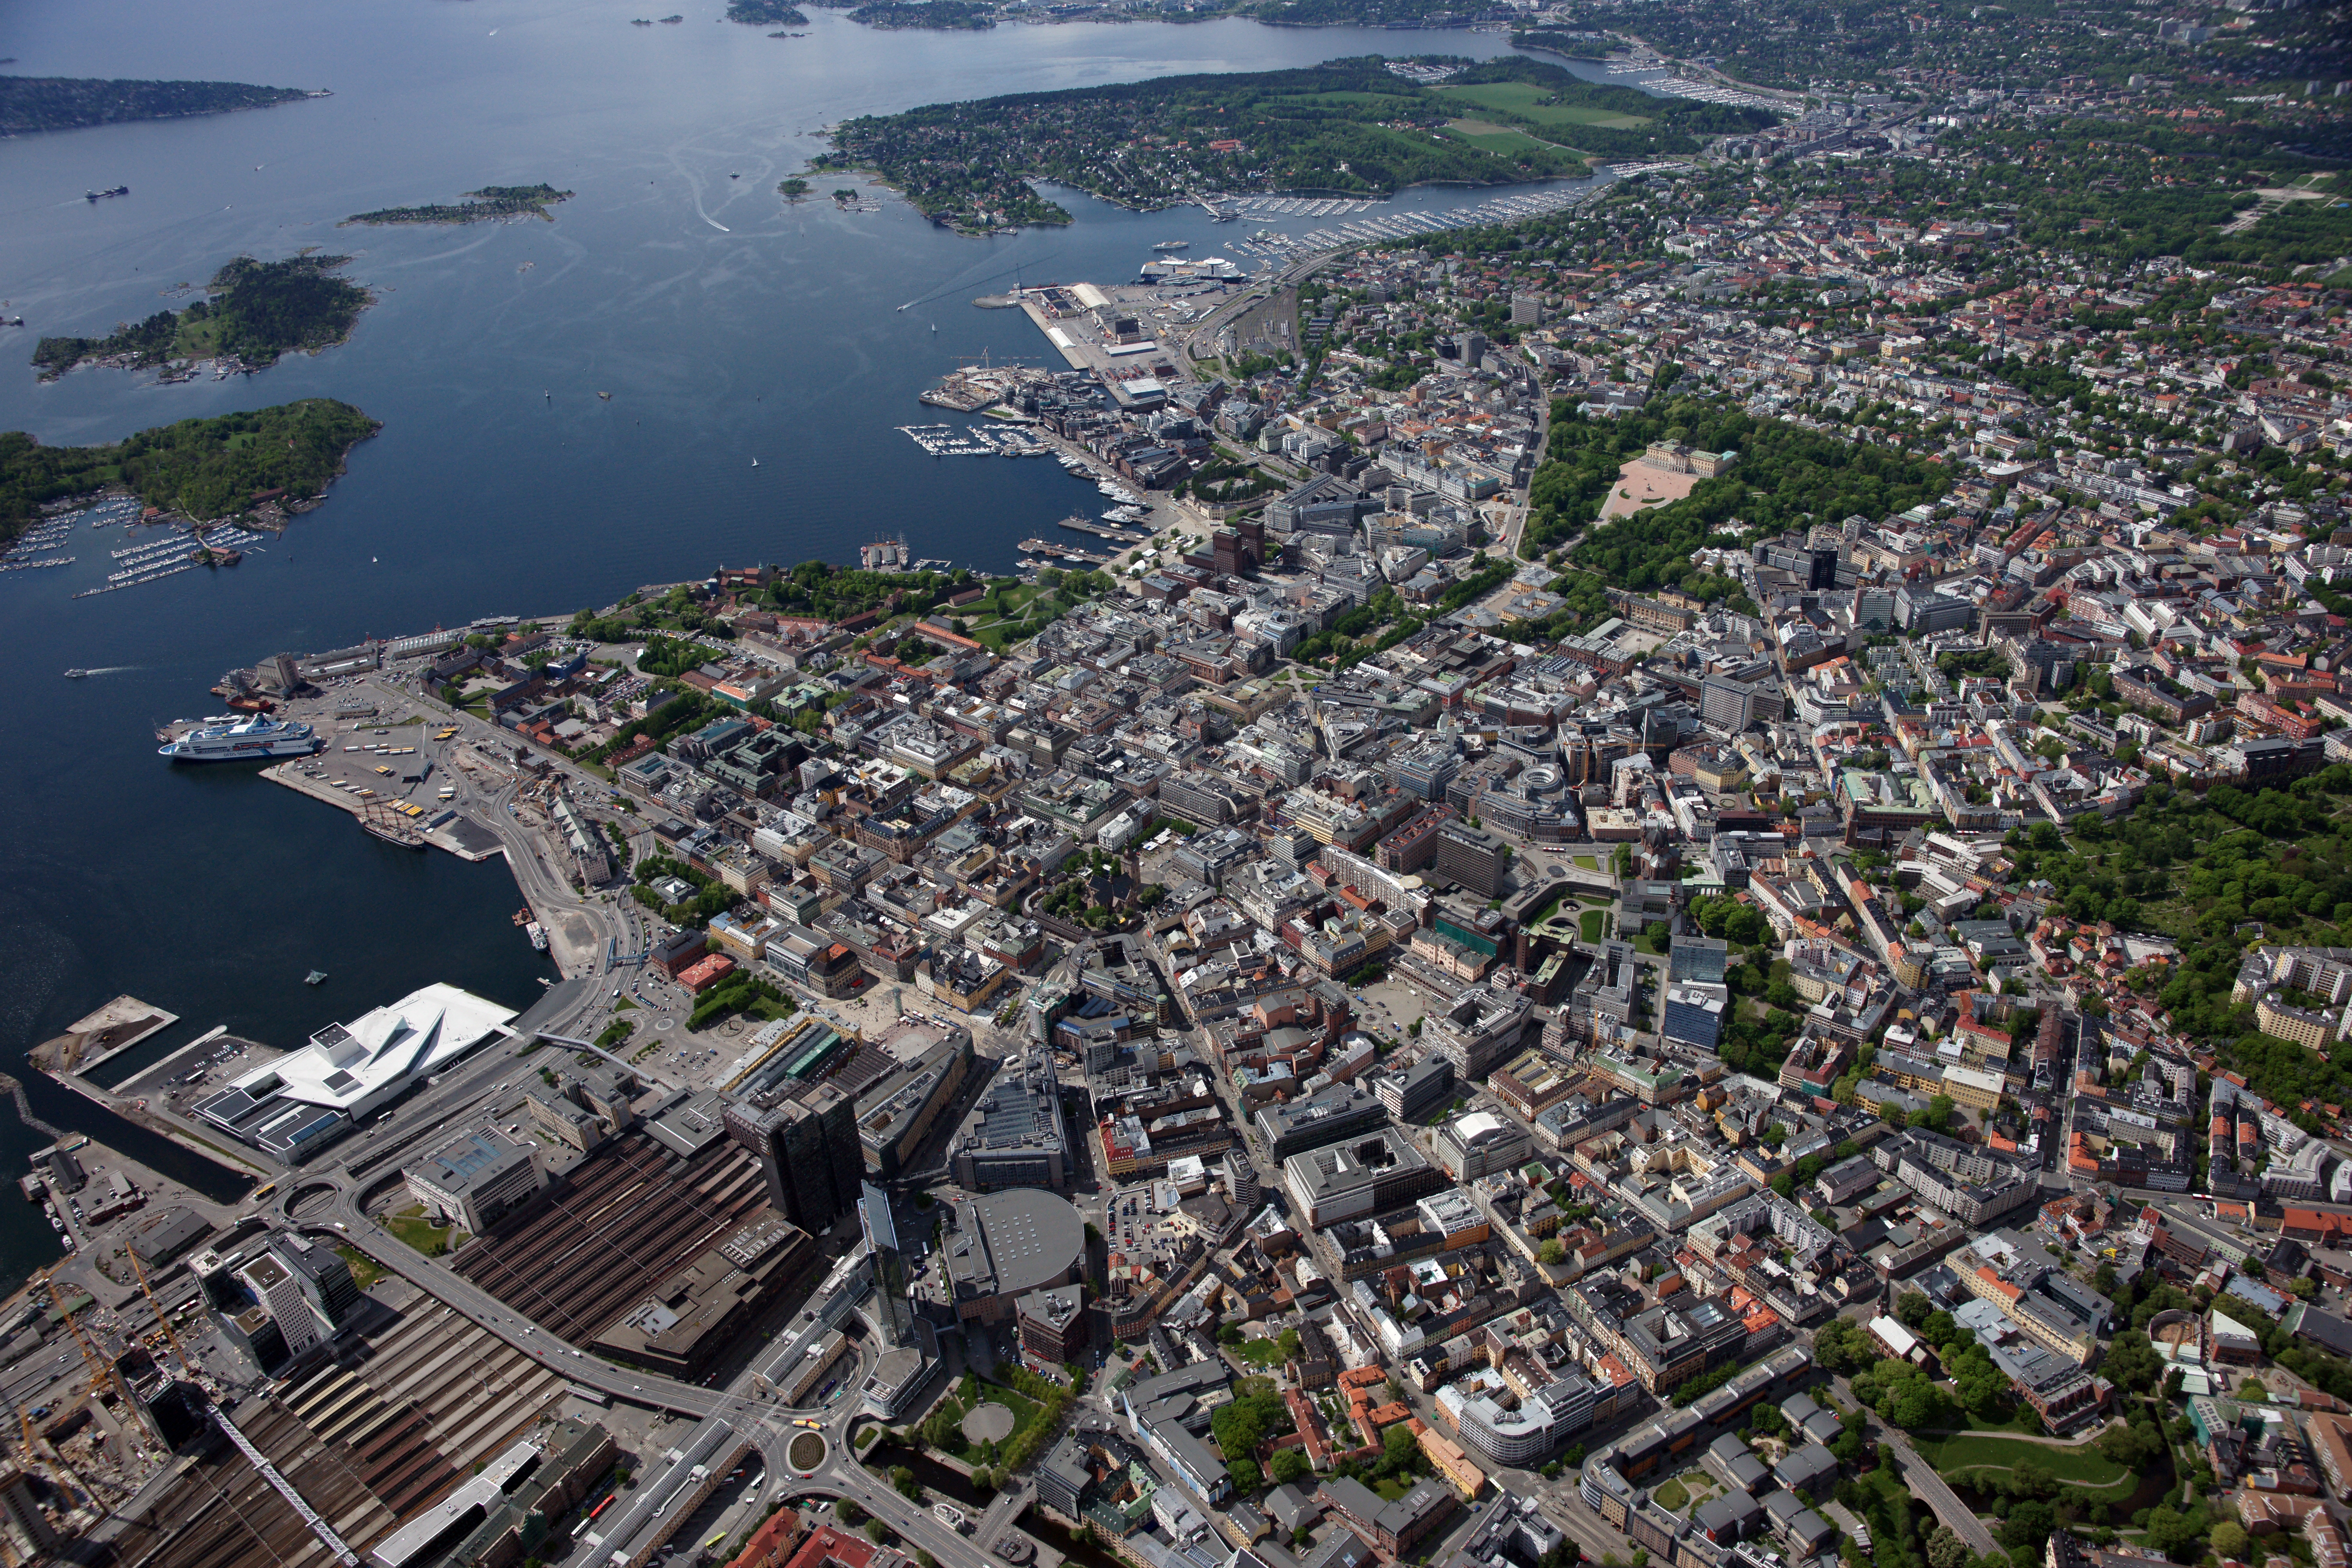 Oslo seen from above. Photo: Lasse Tur